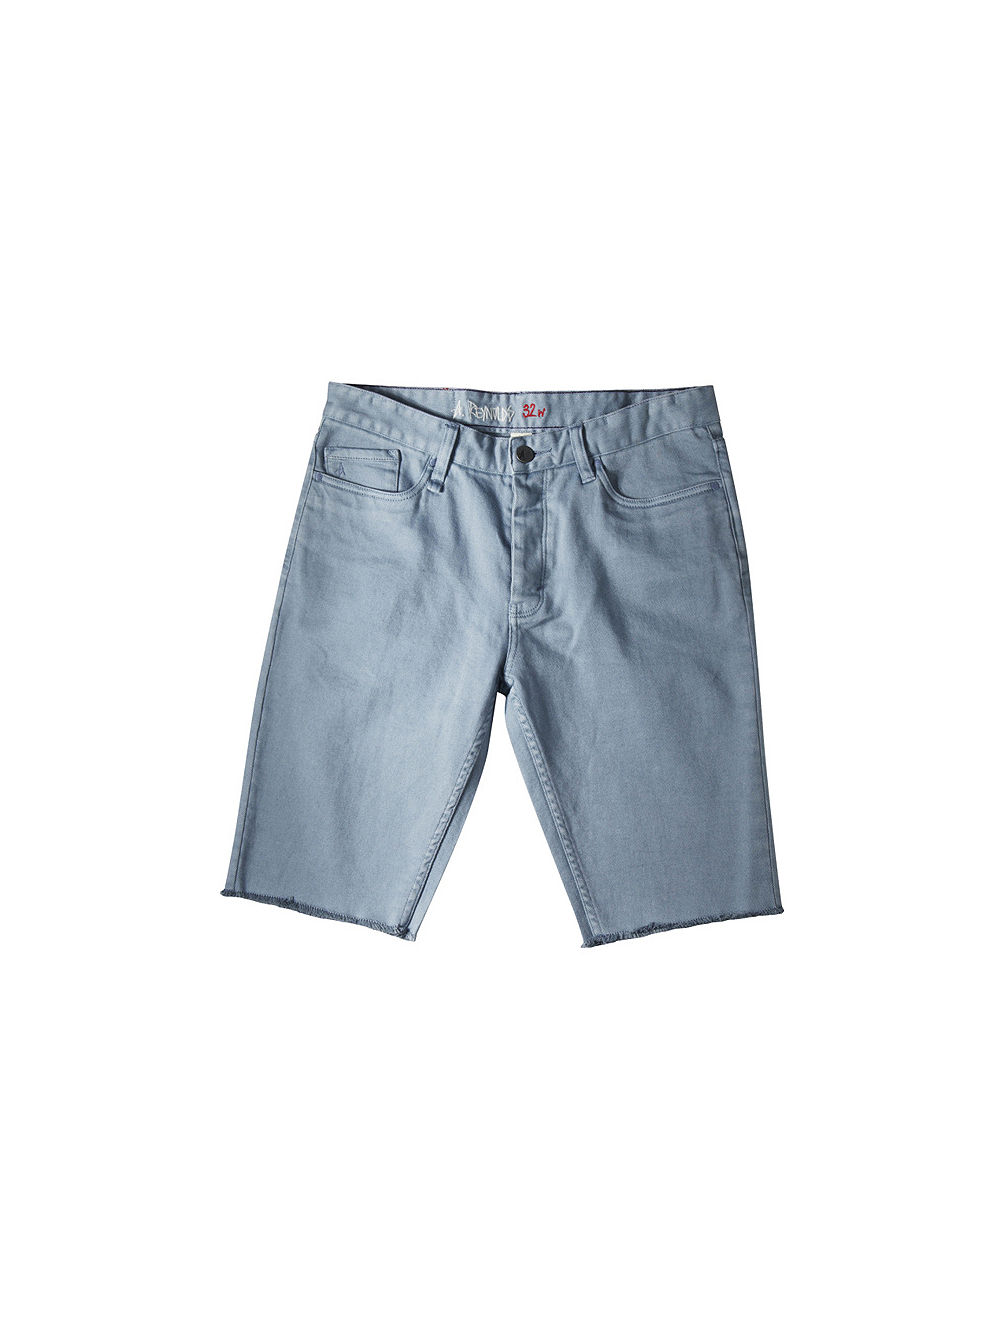 A.Reynolds Signature Denim Short